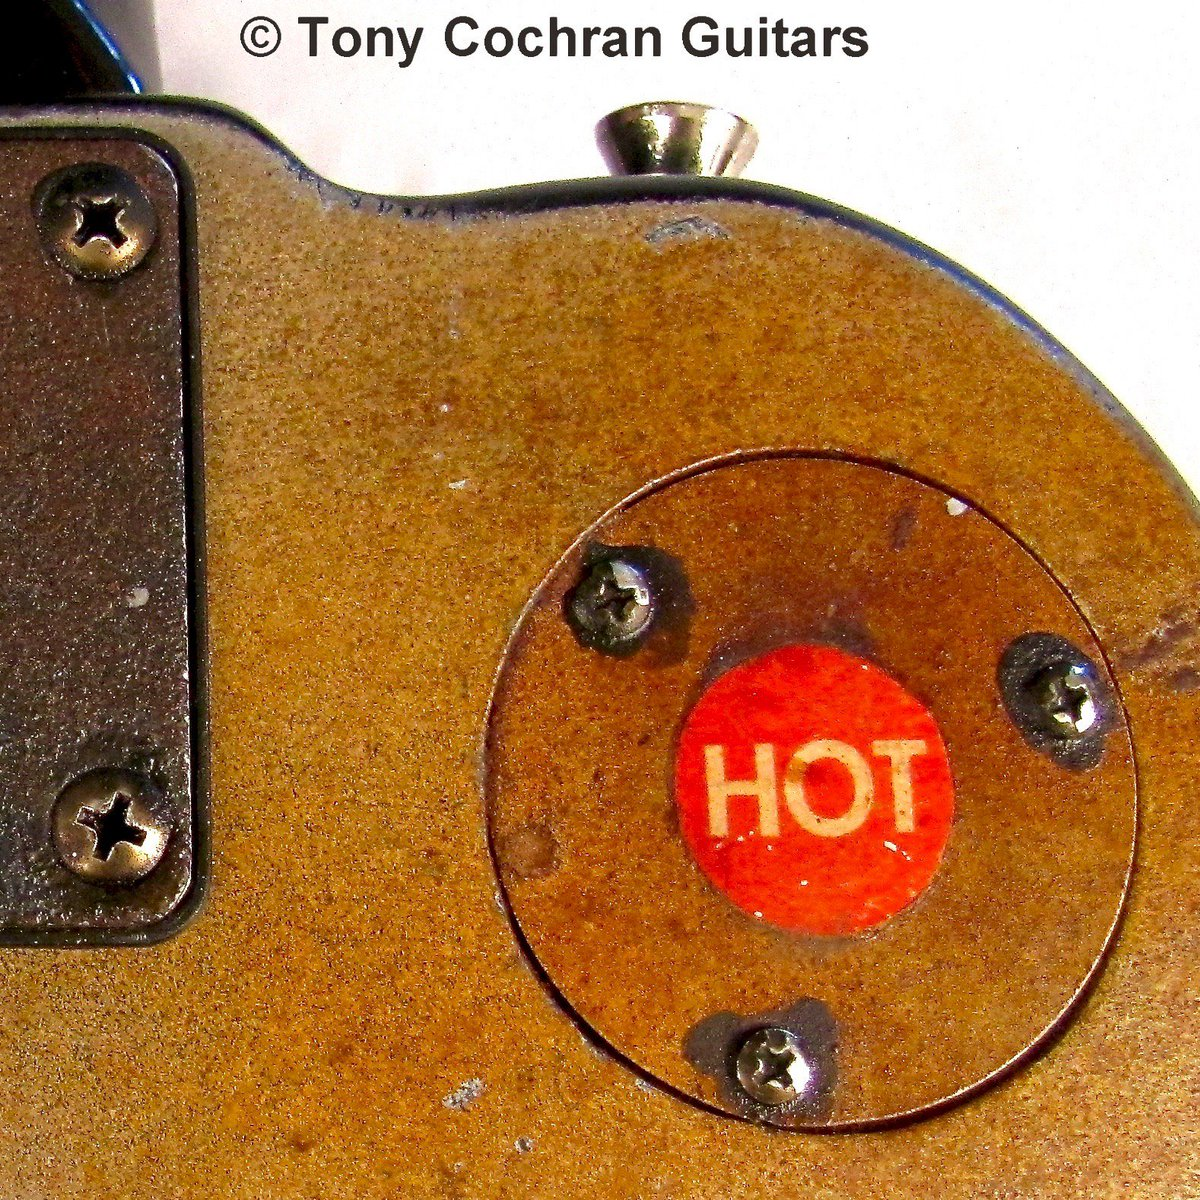 Out Of The Shadows - Tony Cochran newly created guitar is HOT HOT HOT! Watch for another sneak peek. What do you think will make this beauty HOT?  #custom #uniqueguitars #guitarist #art @ArtMakesCbus @GCAC_Cbus @CityScene #steampunk #Ohio #sale #recycle @CCADedu @columbusmuseum